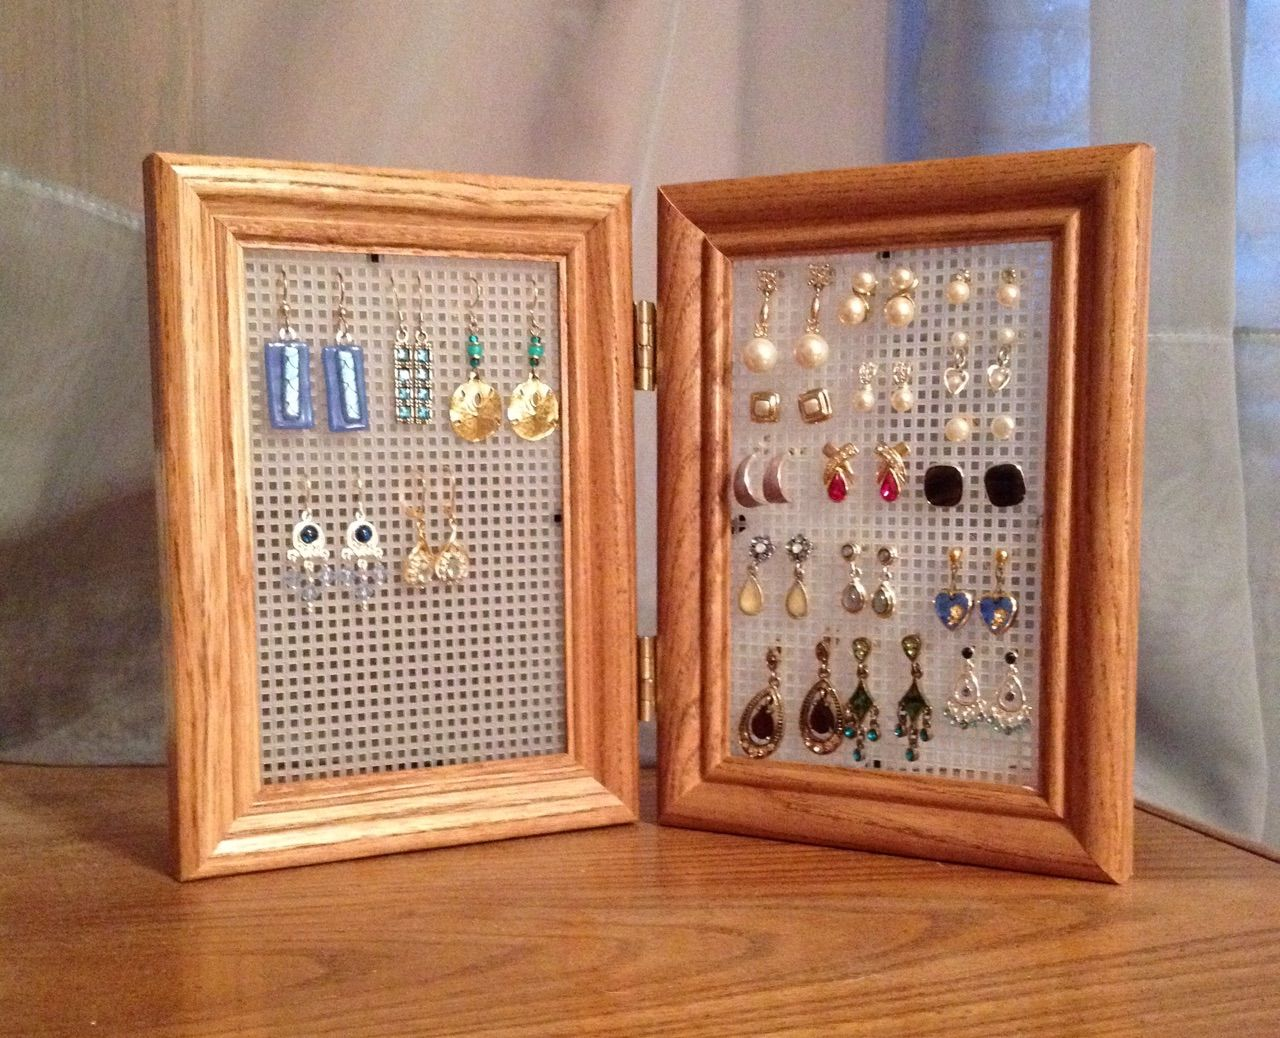 Easy DIY earring storage.  Remove the glass and backing from a hinged frame and replace with plastic canvas.  Can sit open on your dresser, or folds closed for storage or travel.  I have a separate set I use for all my holiday earrings that I don't want sitting out all year long.